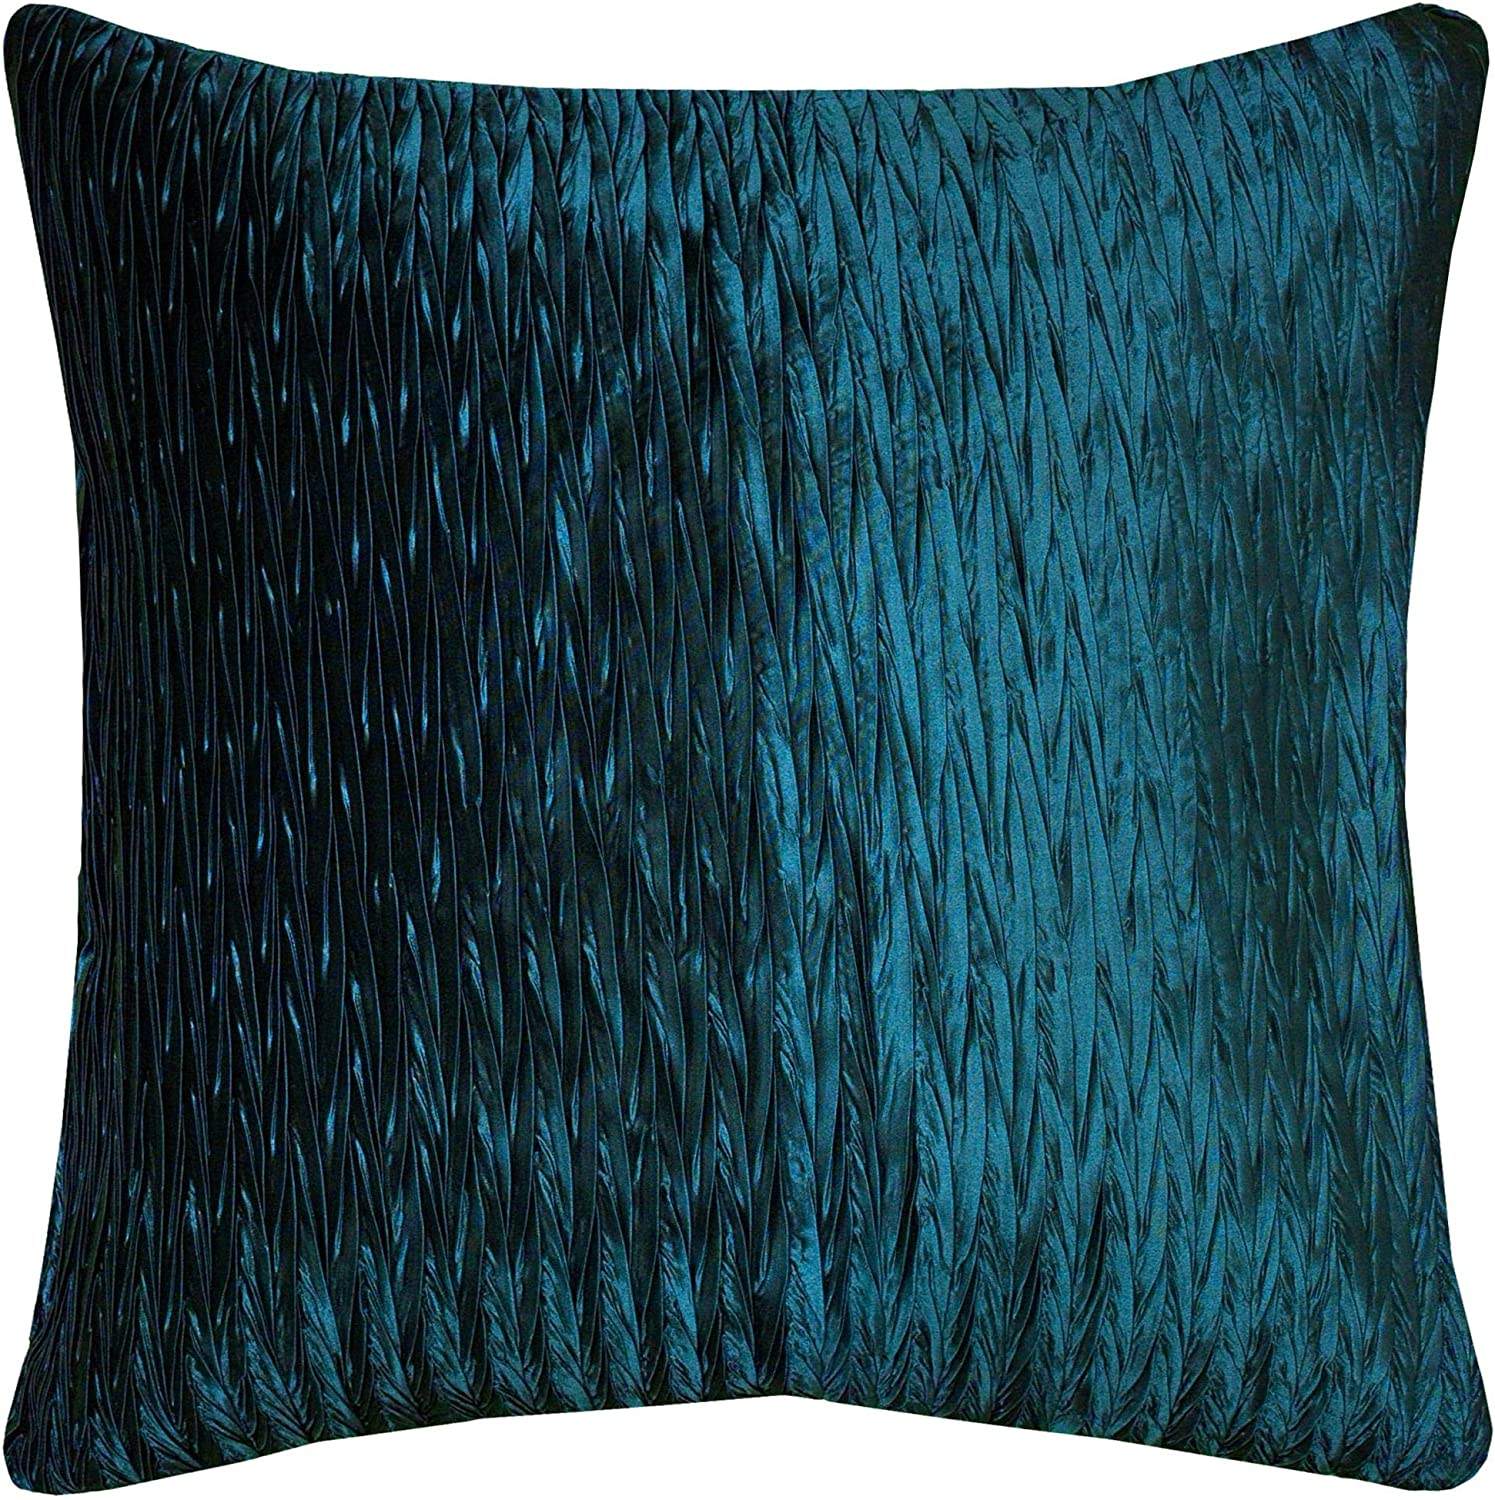 Rizzy Home T06485 Decorative Pillow, 18